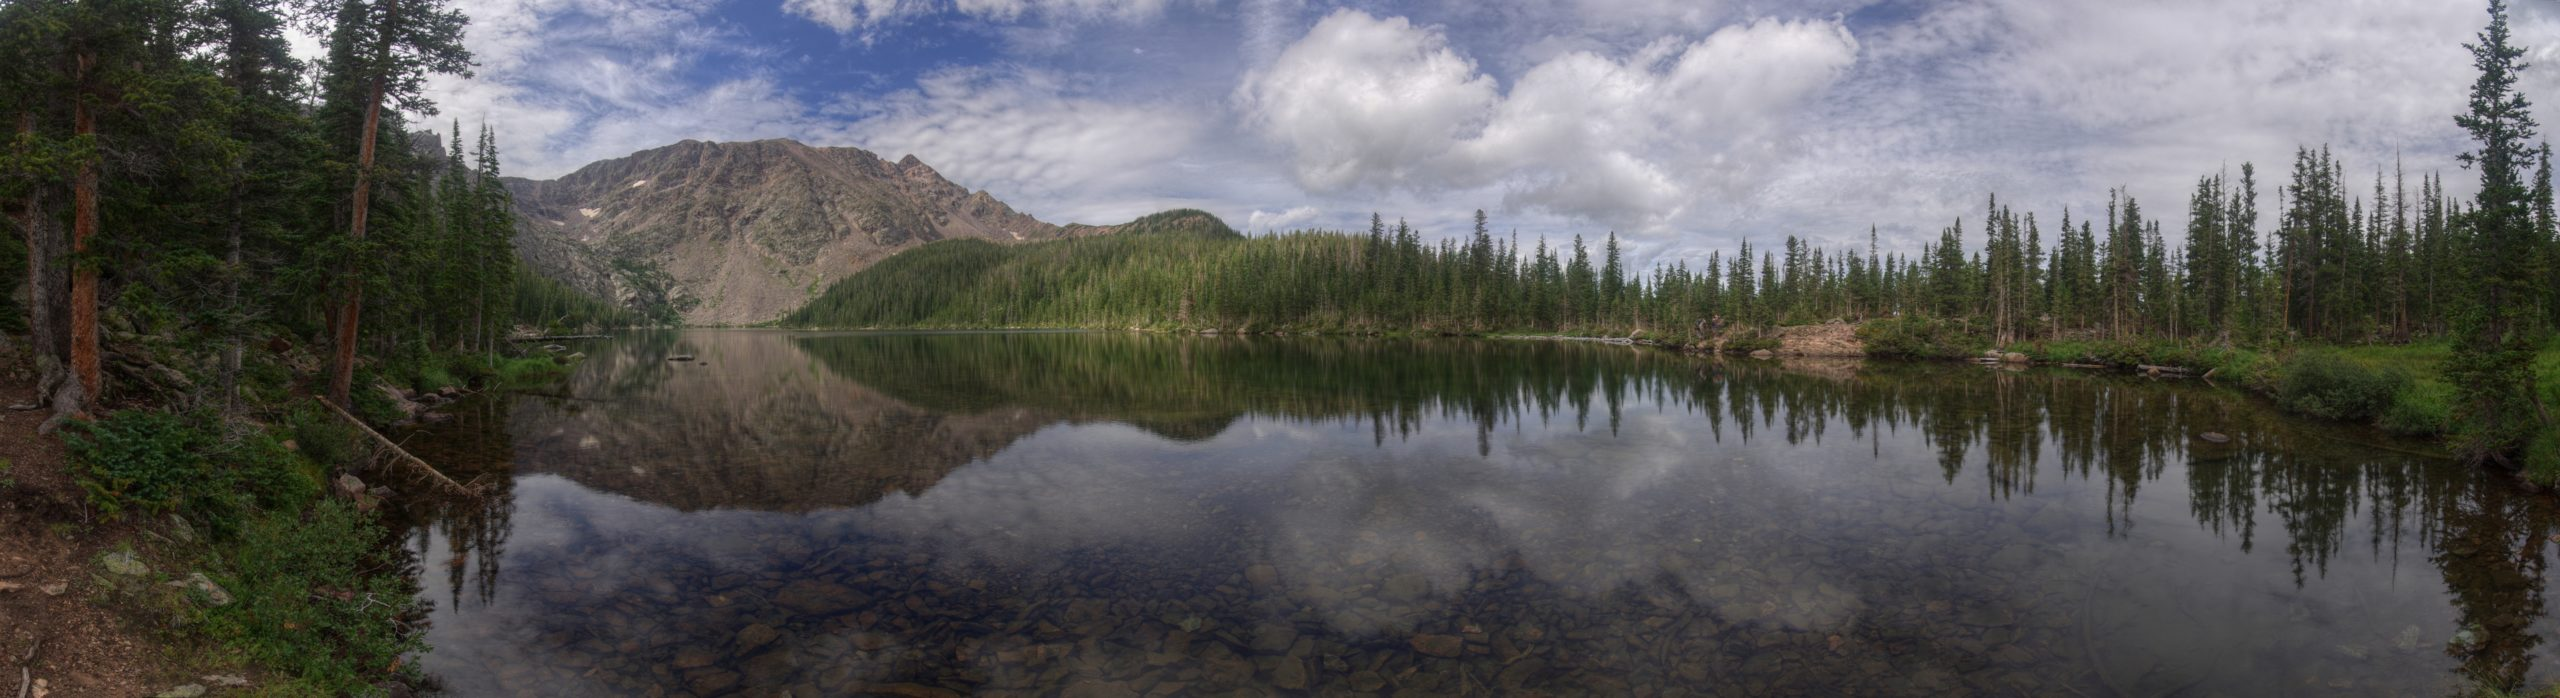 Upper Cataract Lake Panorama